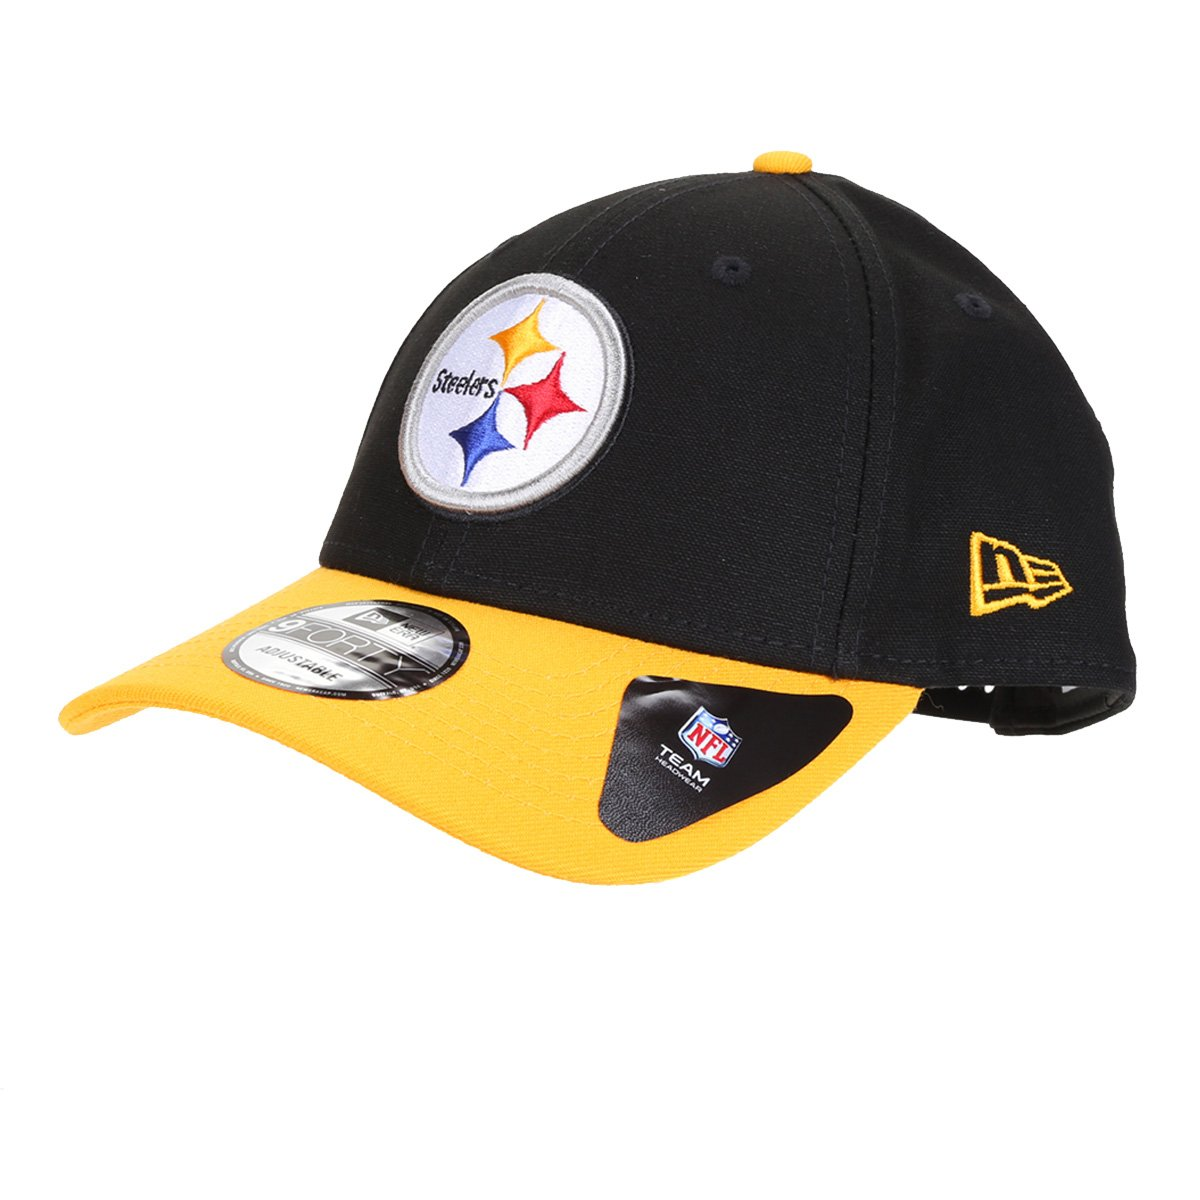 Boné New Era NFL Pittsburgh Steelers Aba Curva Snapback 940 Team Color